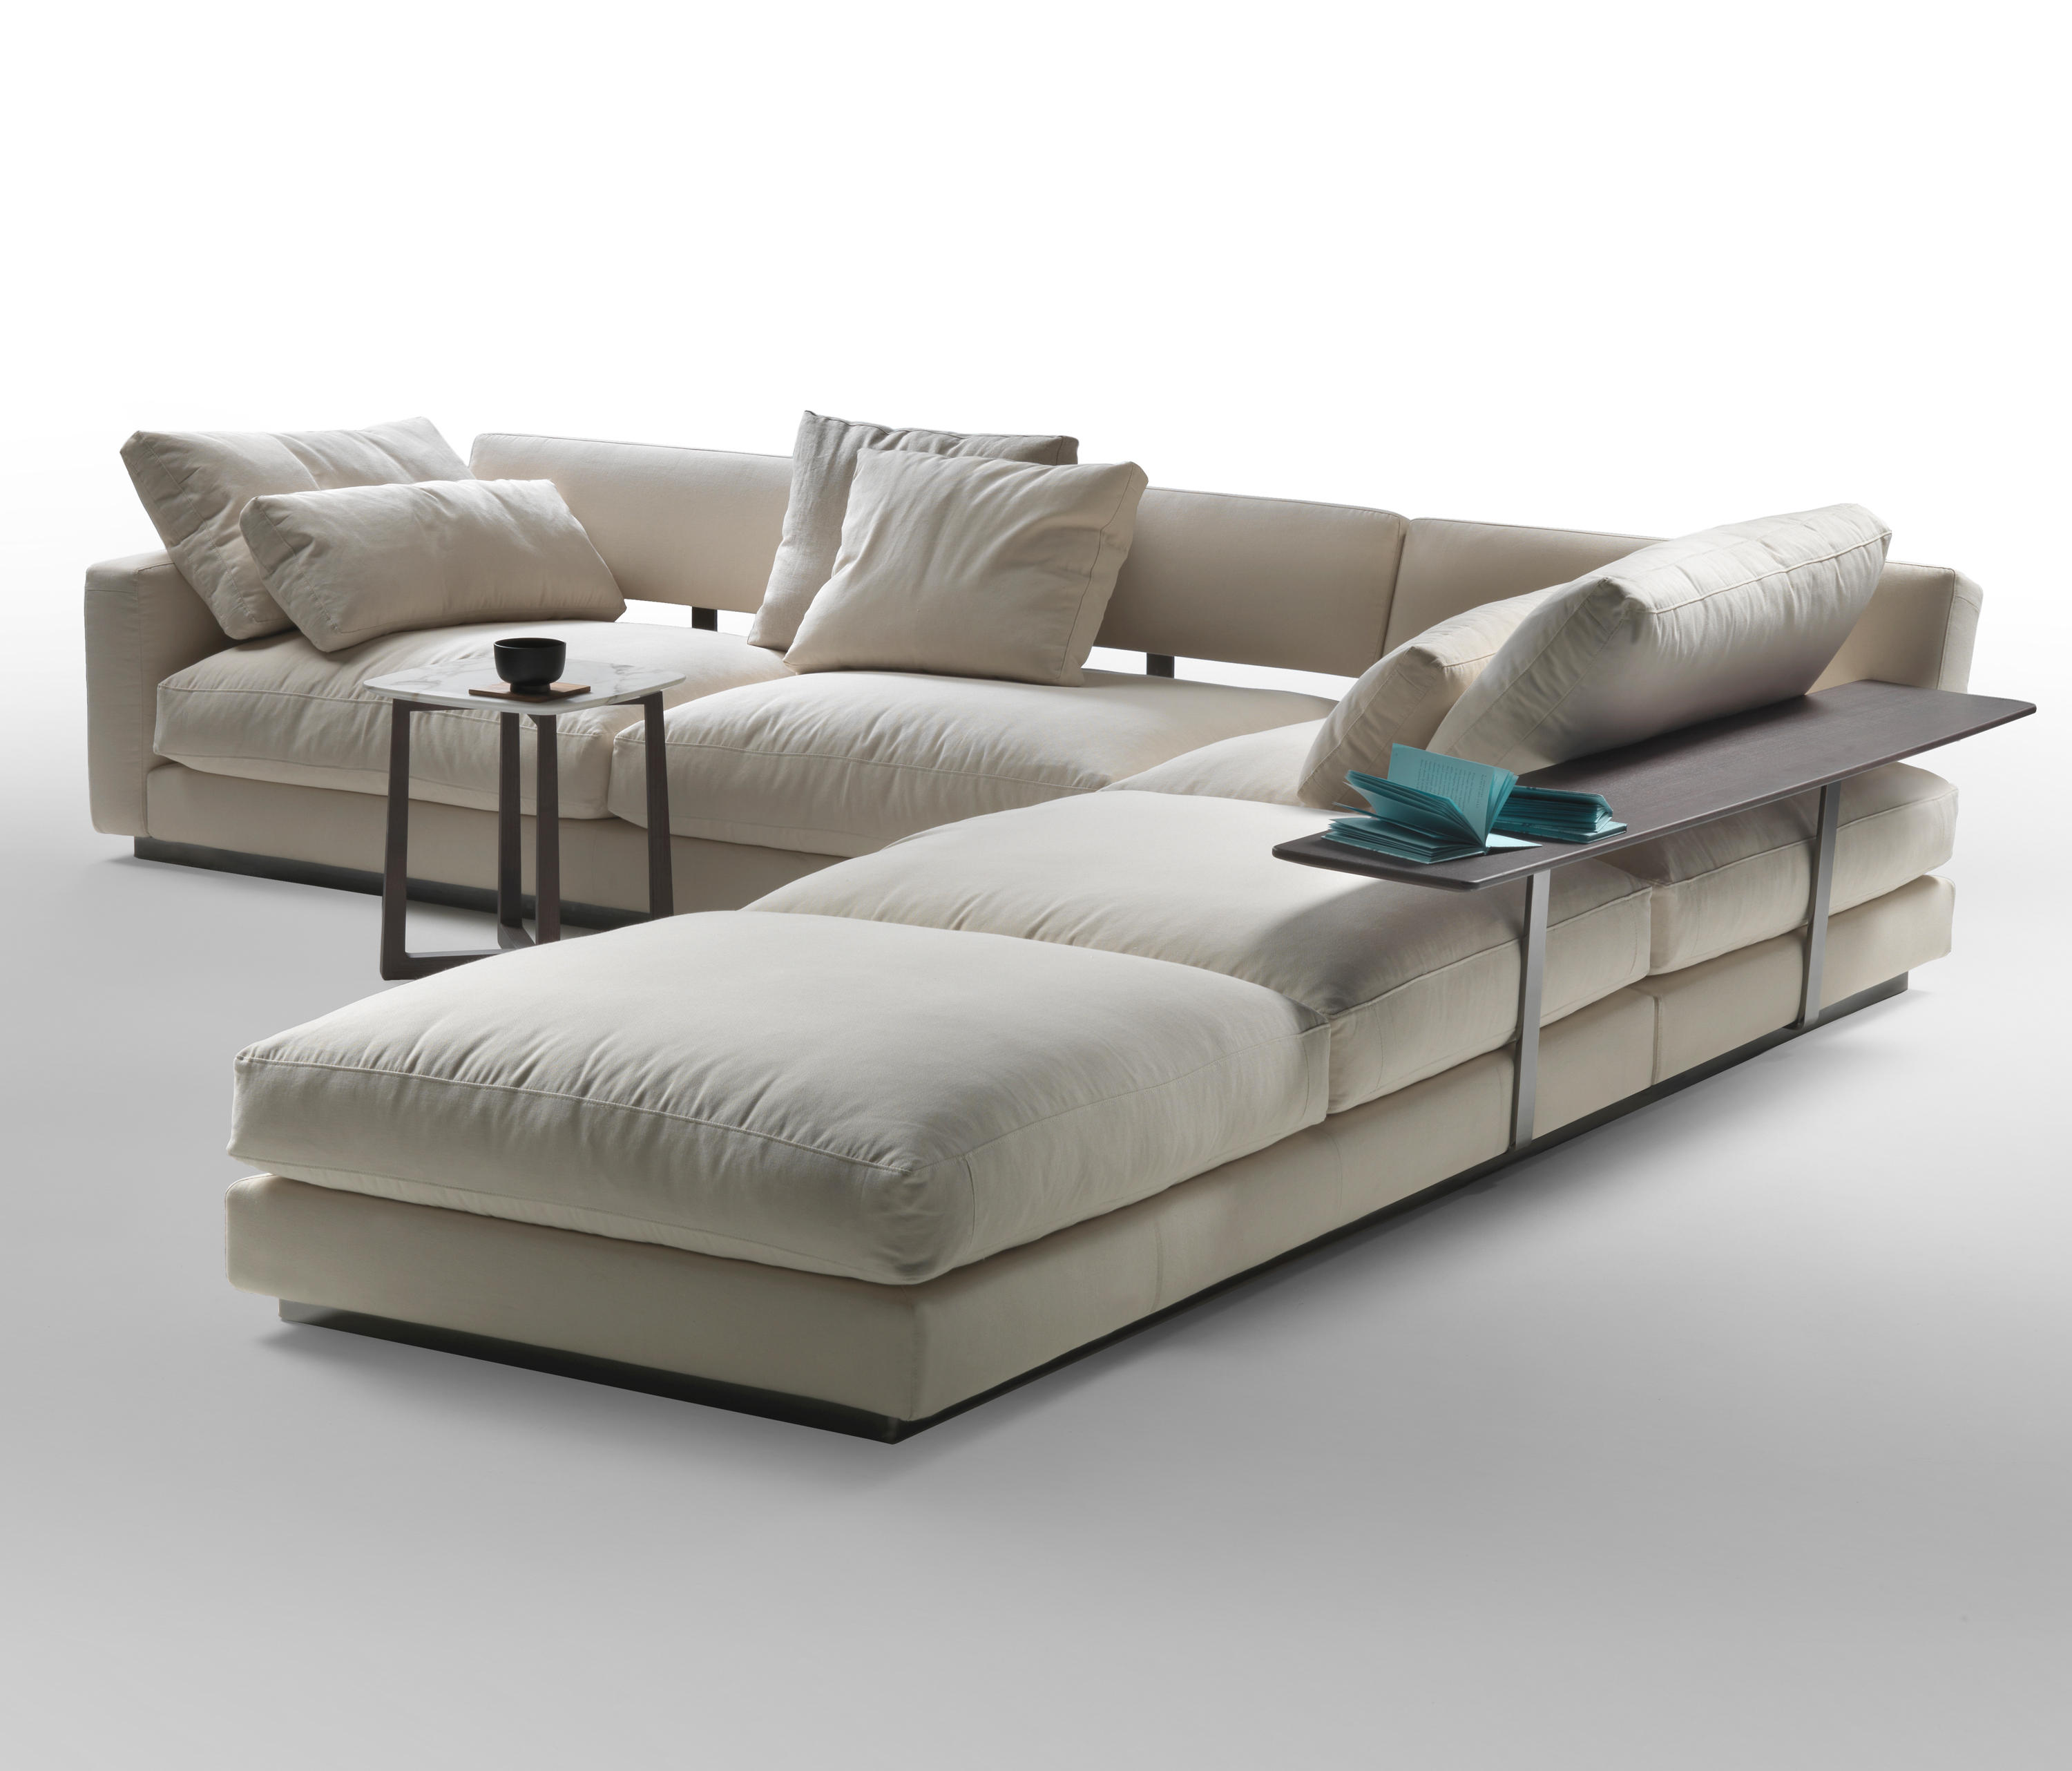 pleasure sectional sofa modular seating systems from flexform architonic